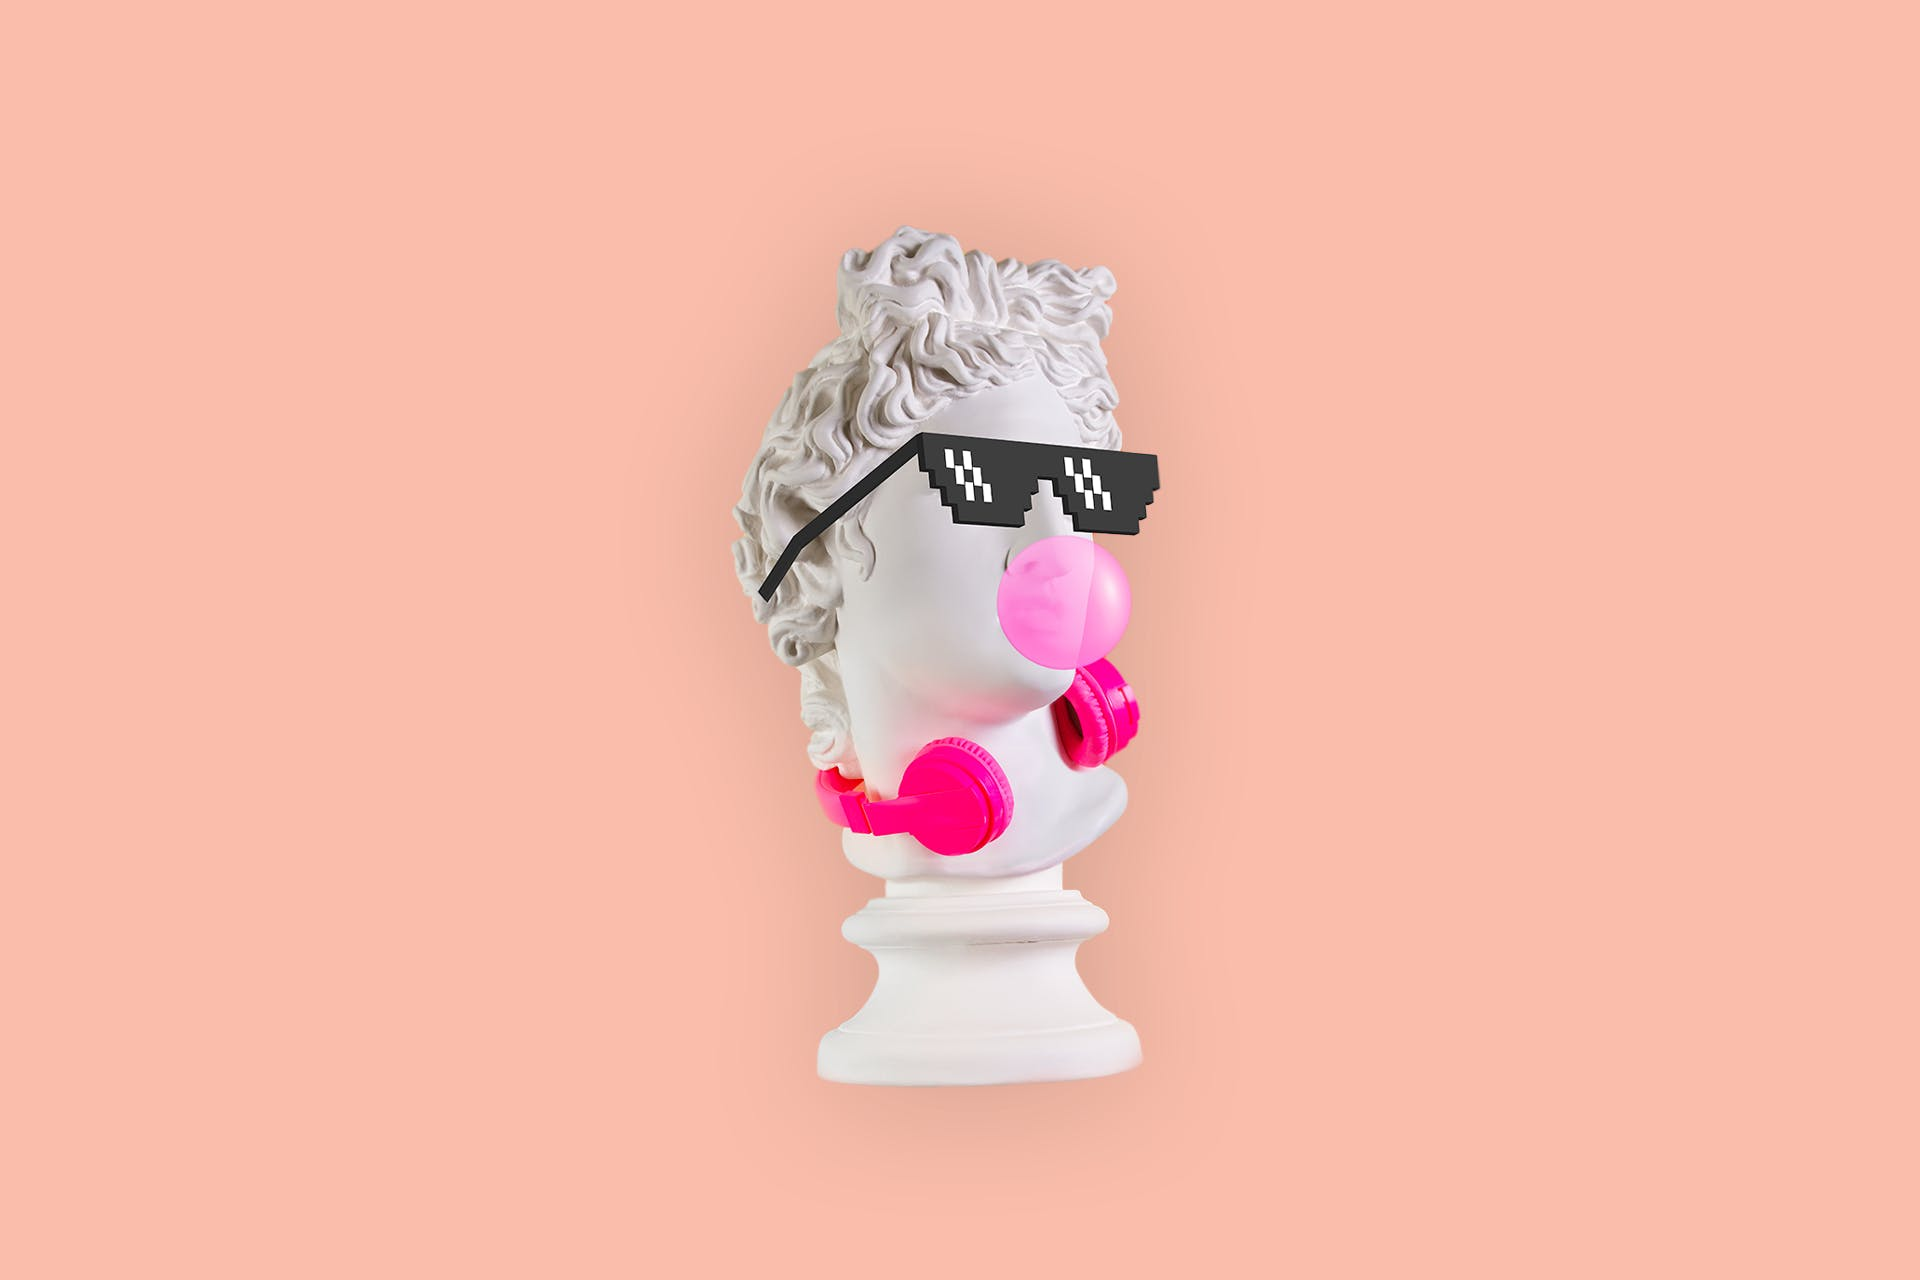 Small ancient statue figurine with sunglasses, bubblegum, and headphones. How marketers can use TikTok blog post